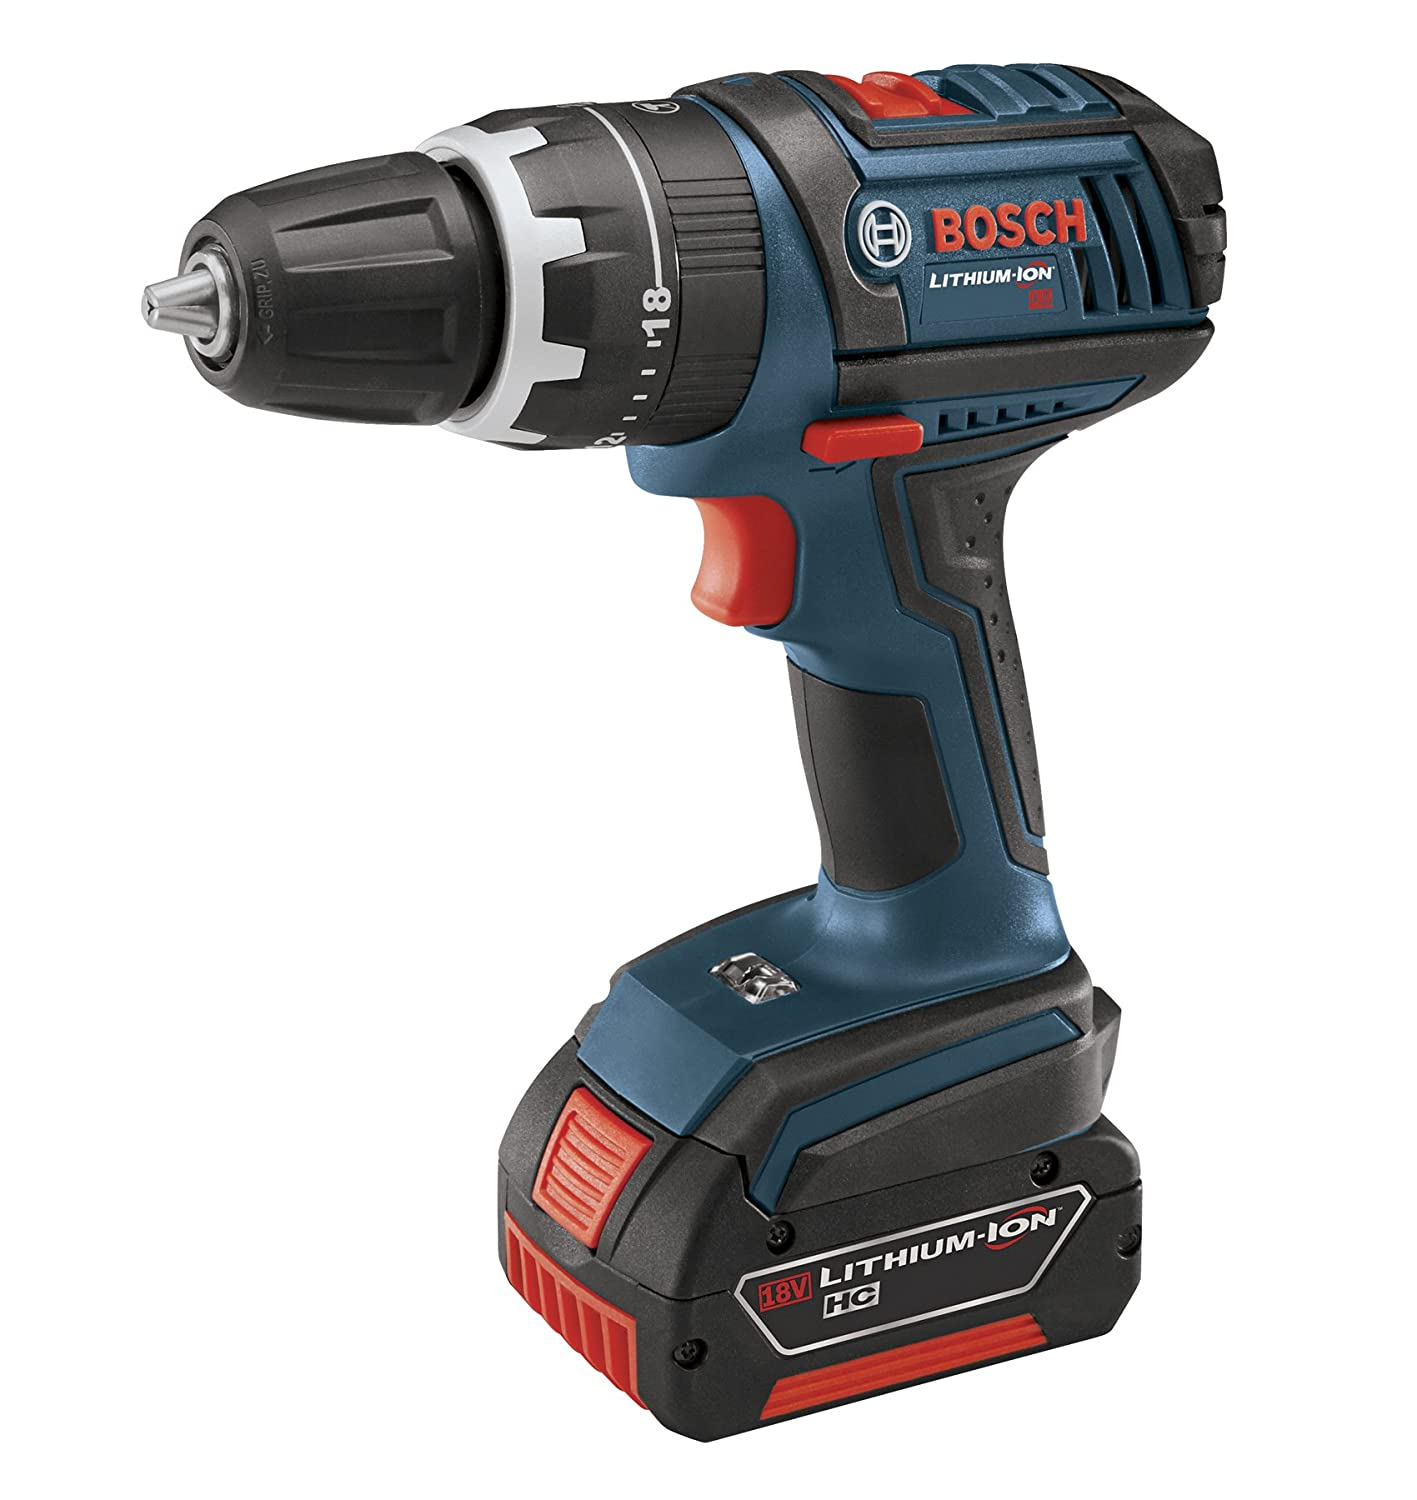 Bosch HDS181-01 18-Volt Lithium-Ion 1 2-Inch Compact Tough Hammer Drill Driver Kit with 2 High Capacity Batteries, Charger and Case